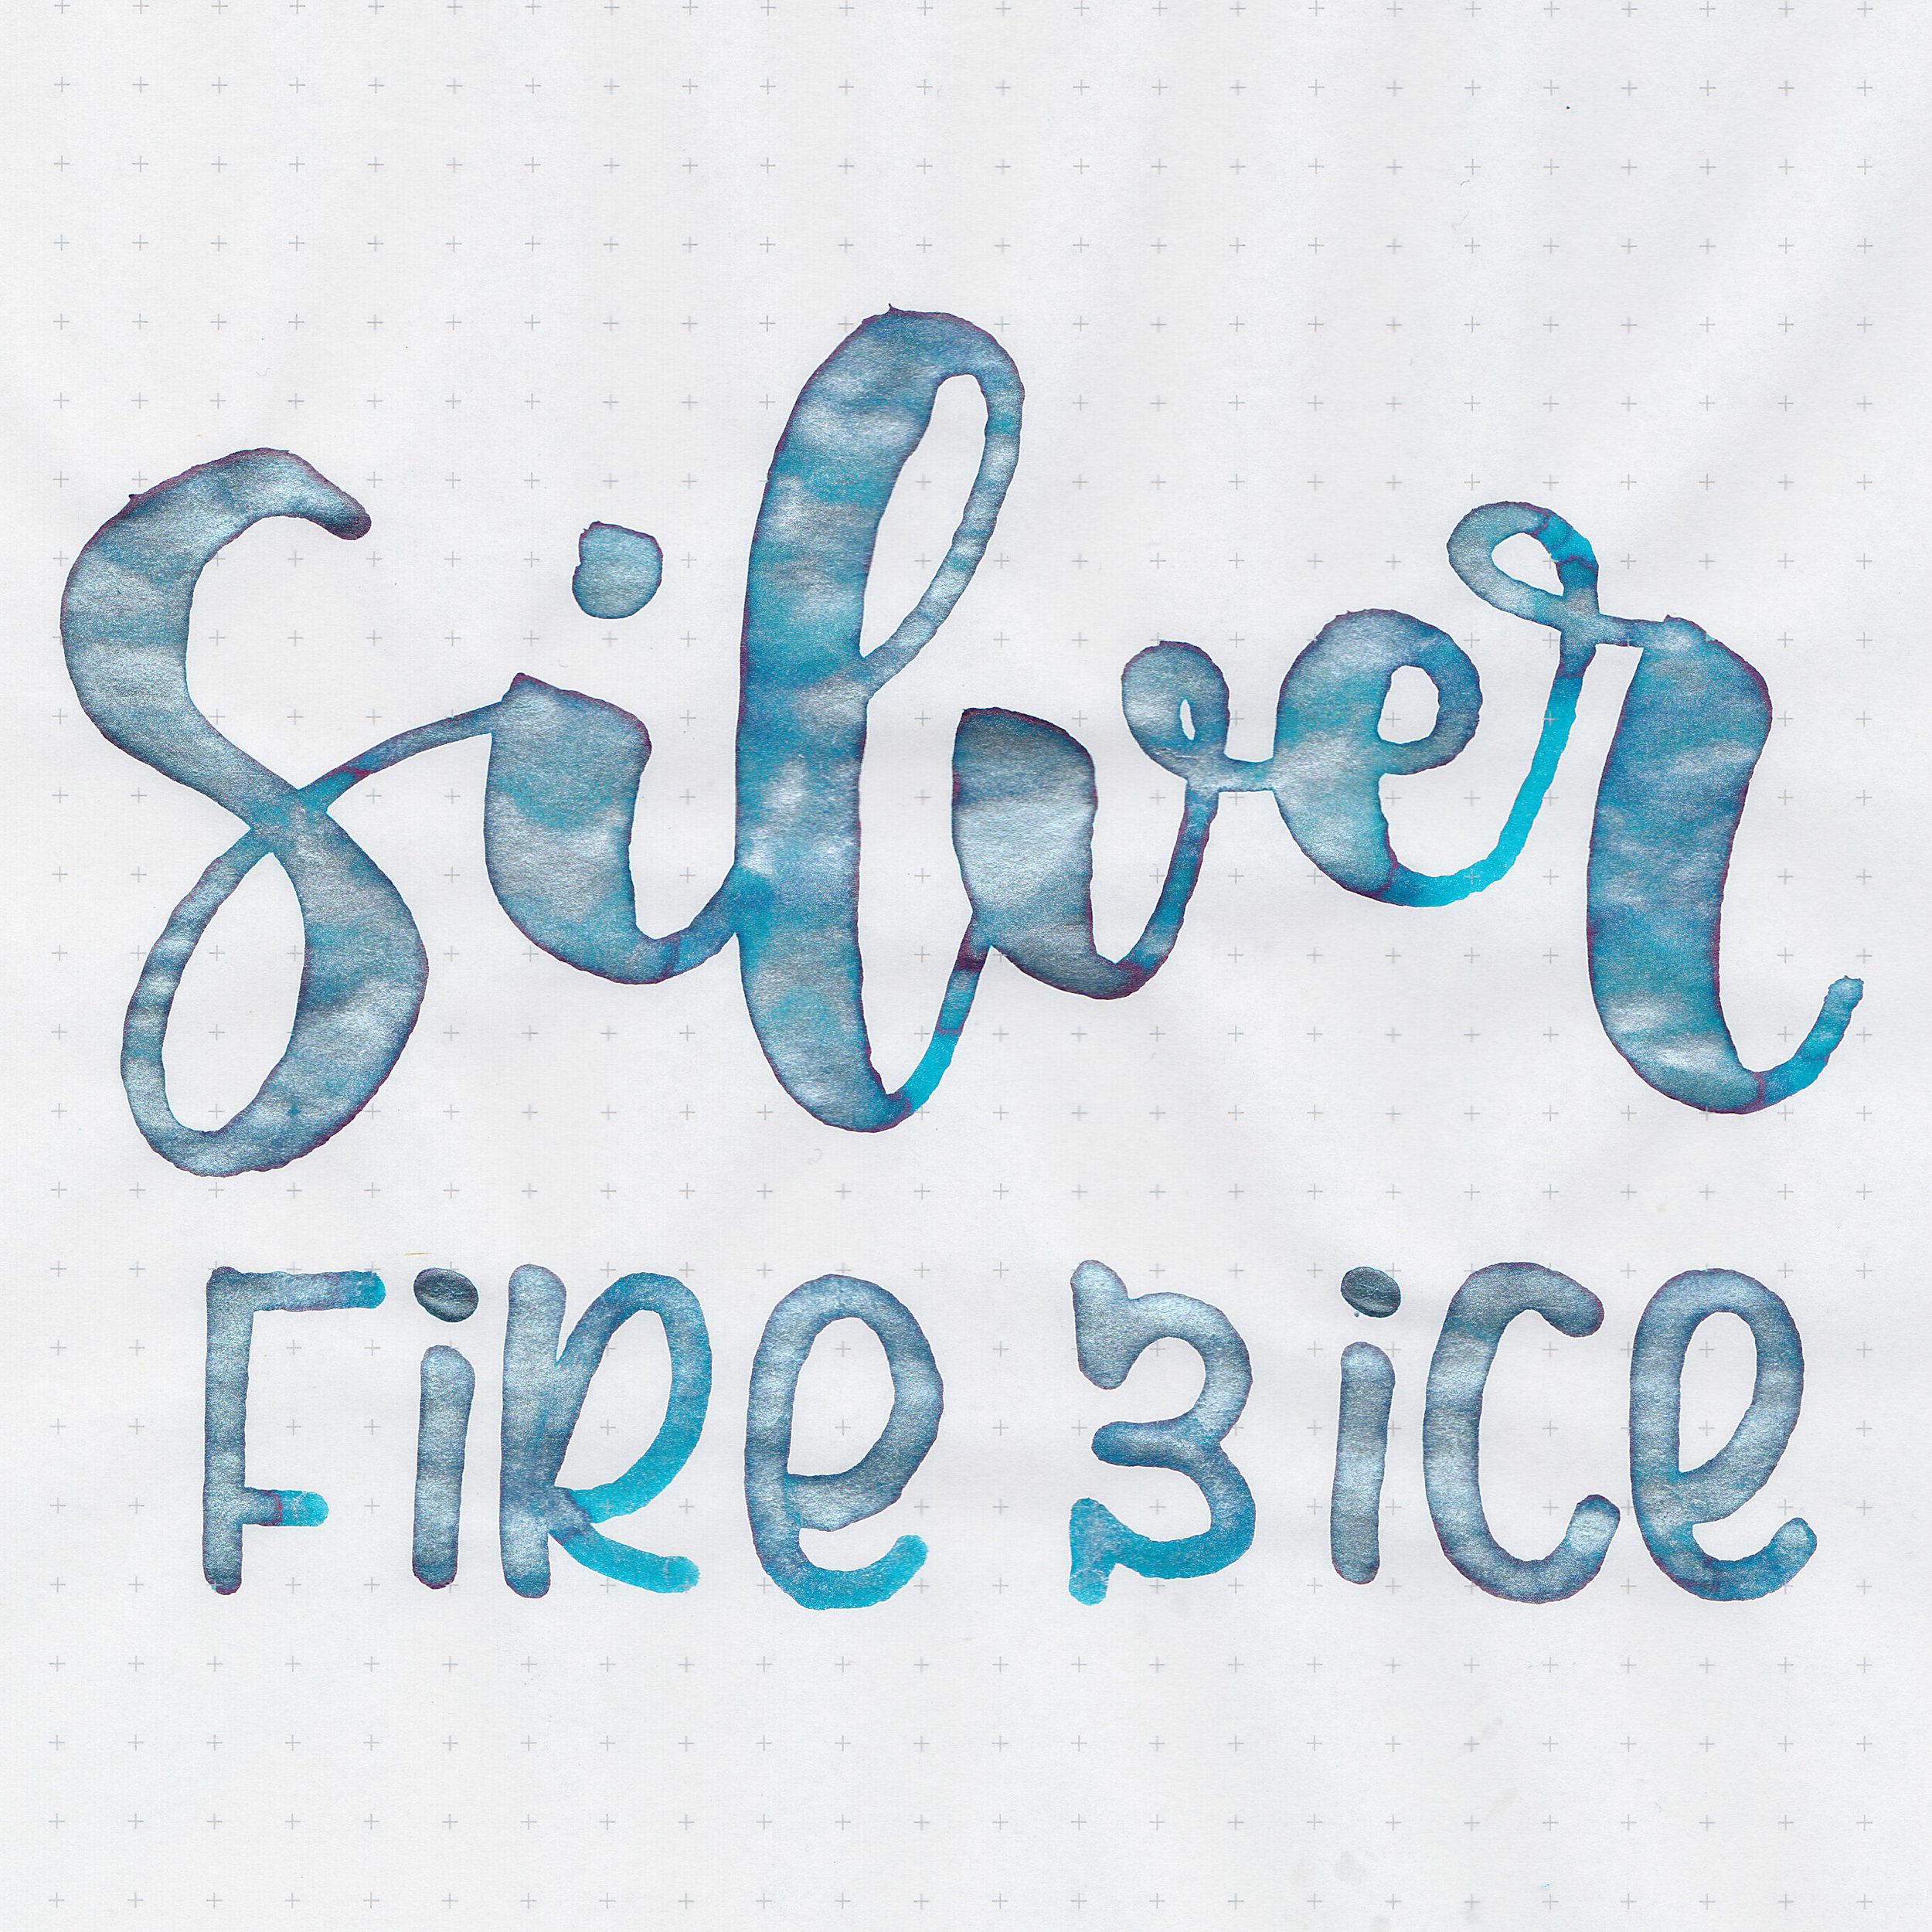 ro-silver-fire-and-ice-17.jpg